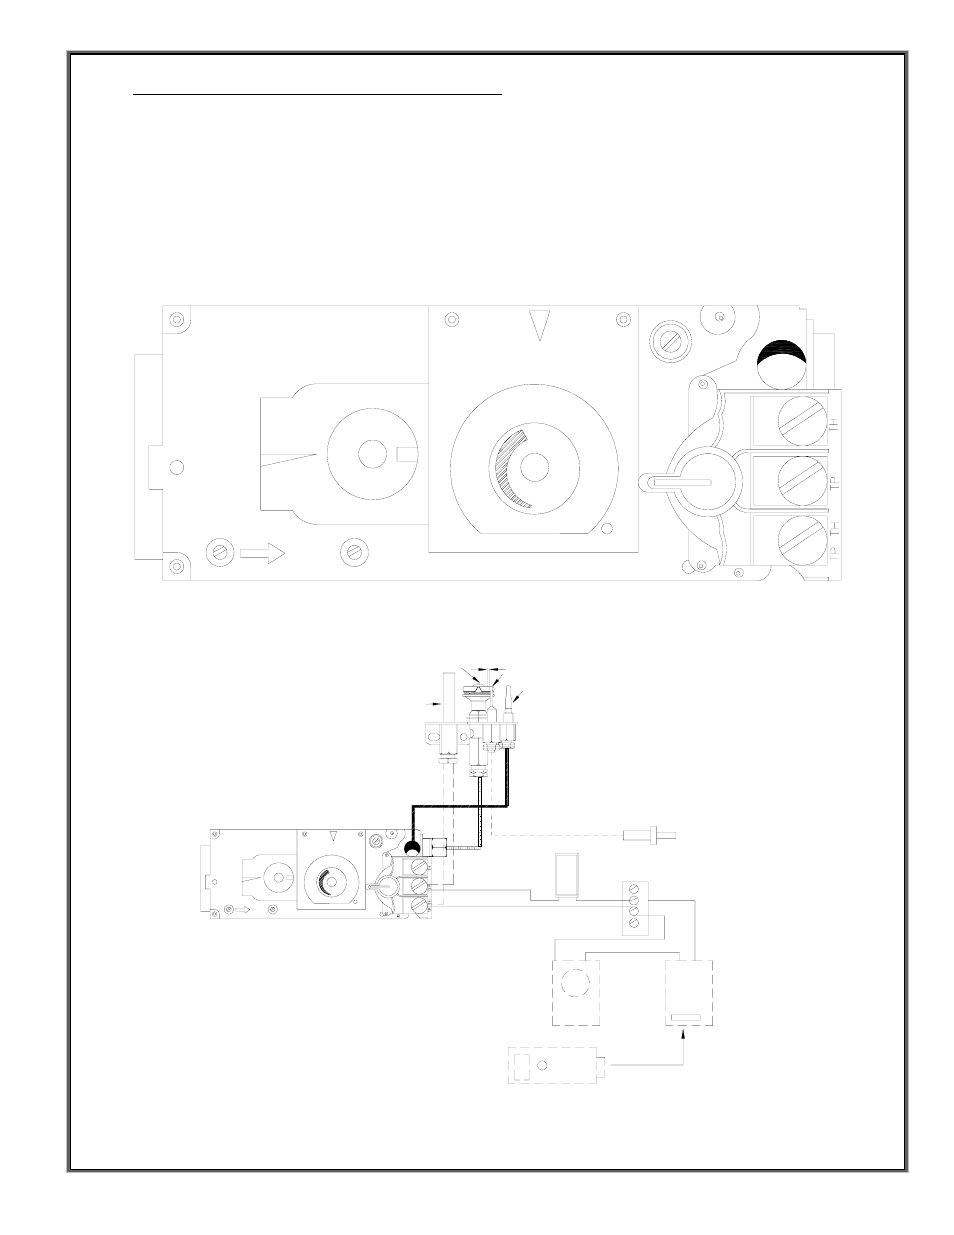 medium resolution of 1996 mazda miata fuse box diagram